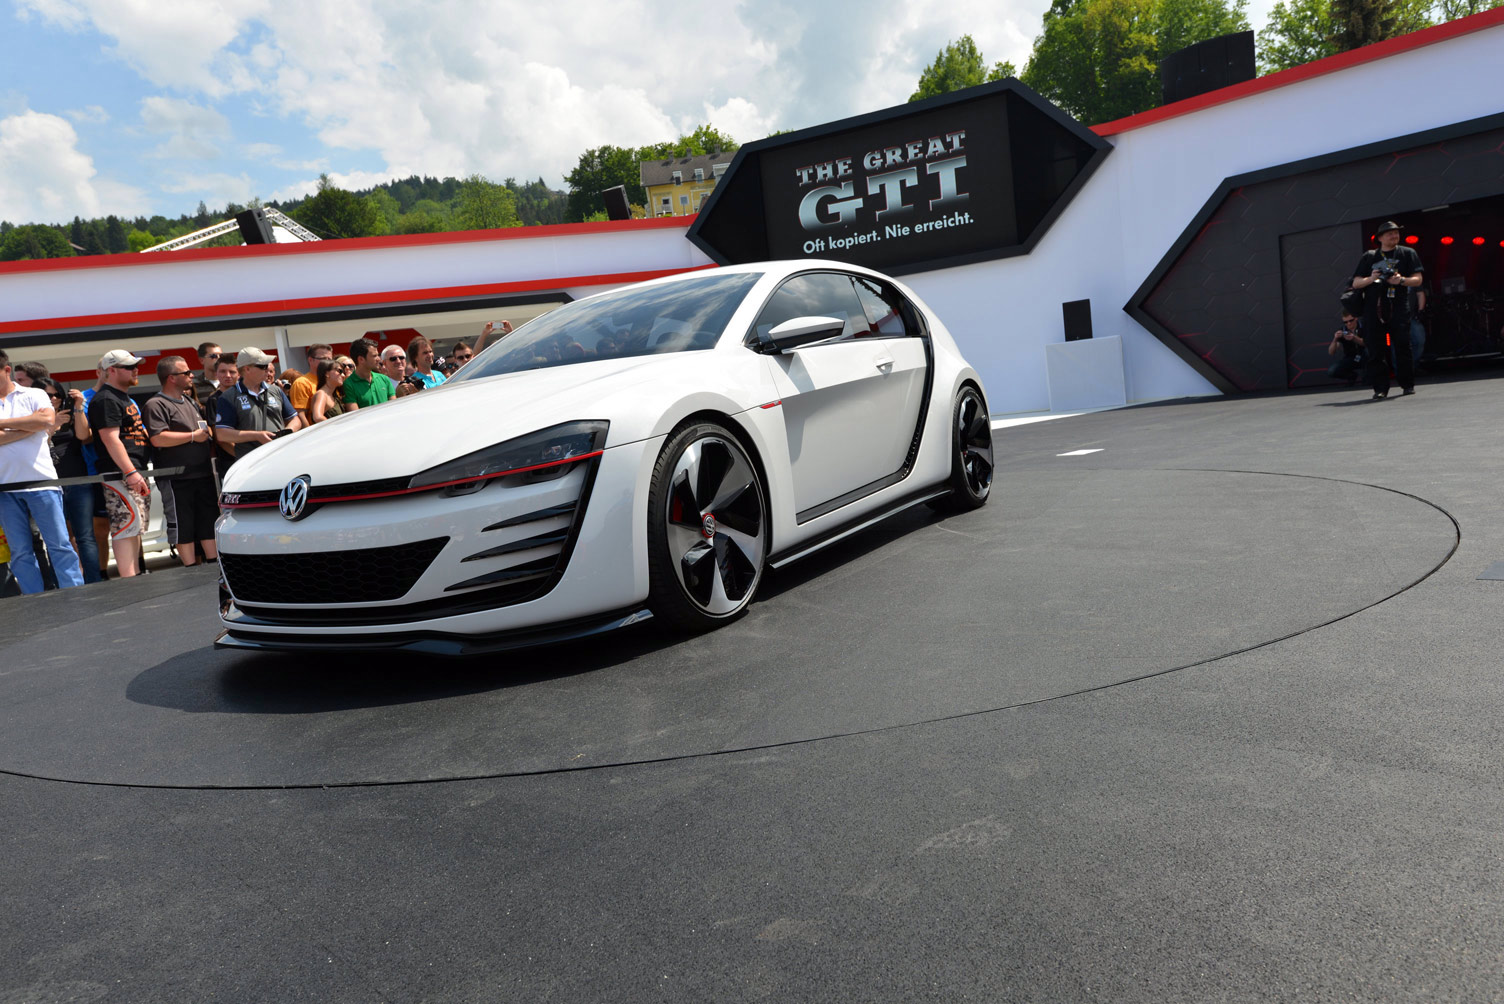 volkswagen-design-vision-gti-worthersee-036